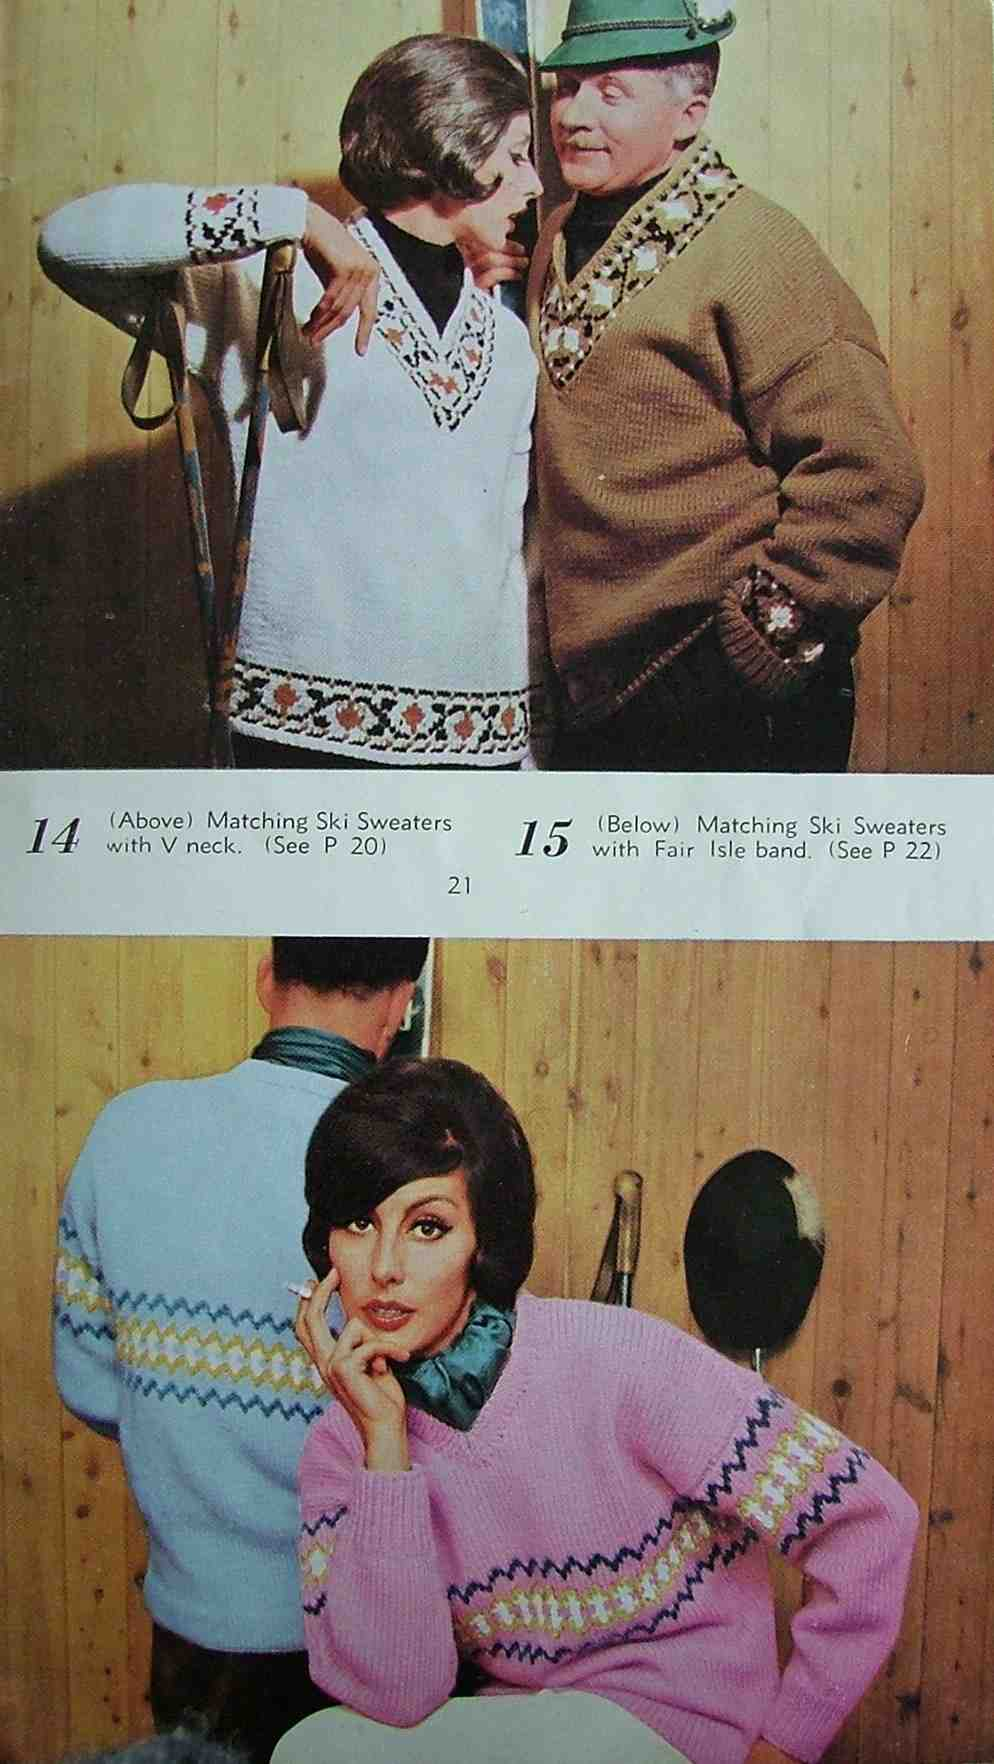 Vacation Knits by villawool p21 circa 1960 photo source: theartofcostume.wordpress.com